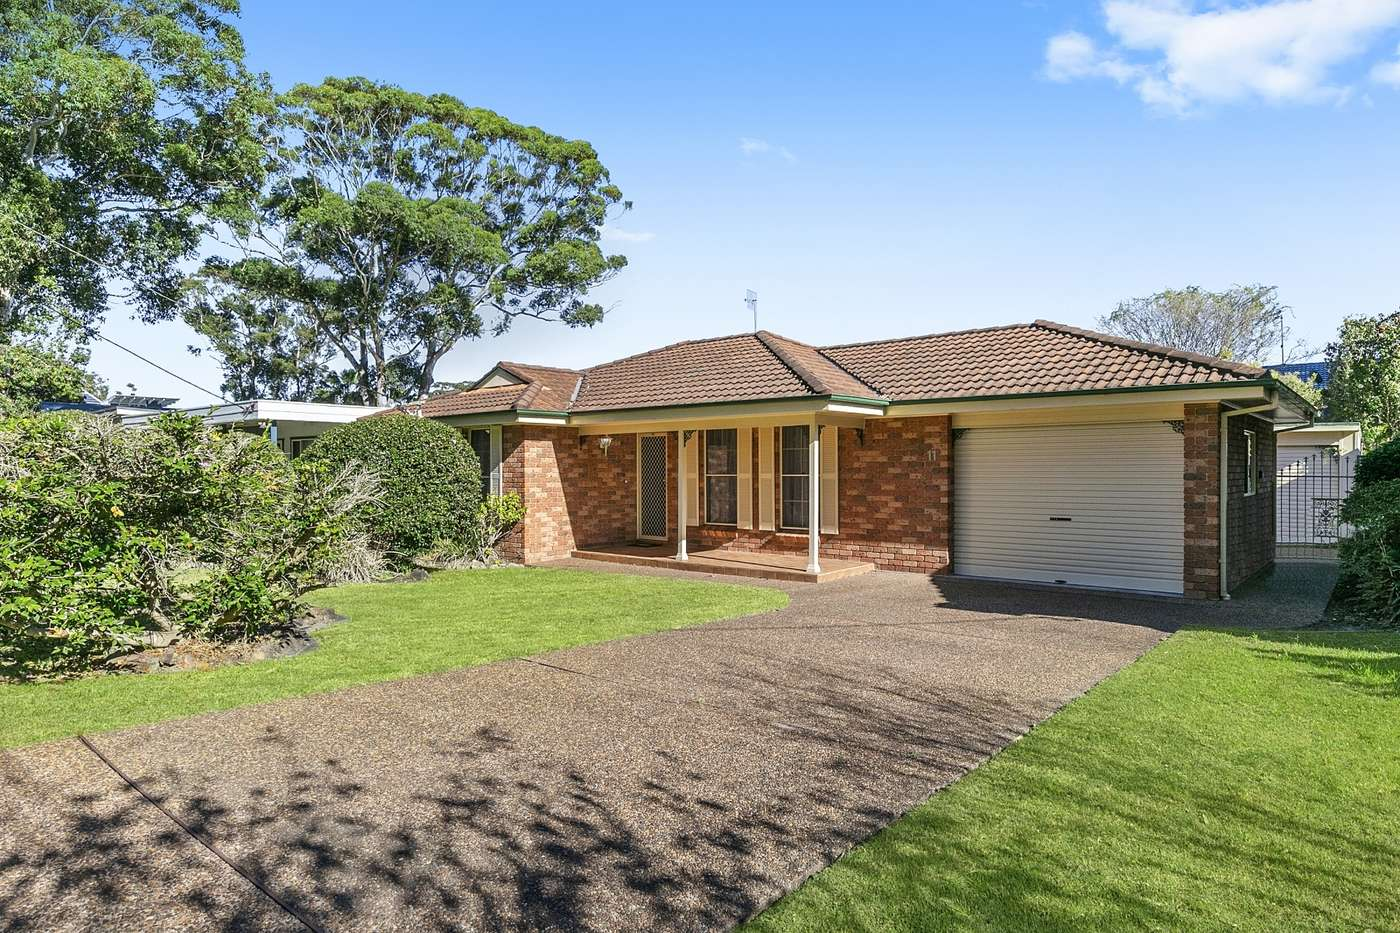 Main view of Homely house listing, 11 Lakin Street, Bateau Bay, NSW 2261